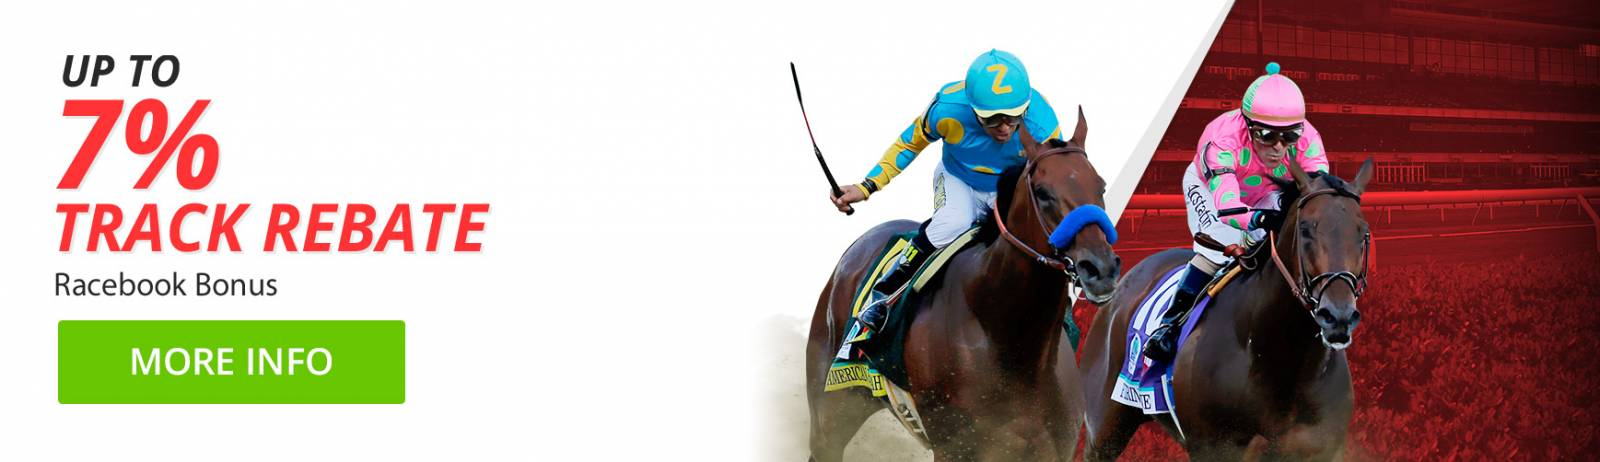 Horse betting online in illinois m tipico sports betting